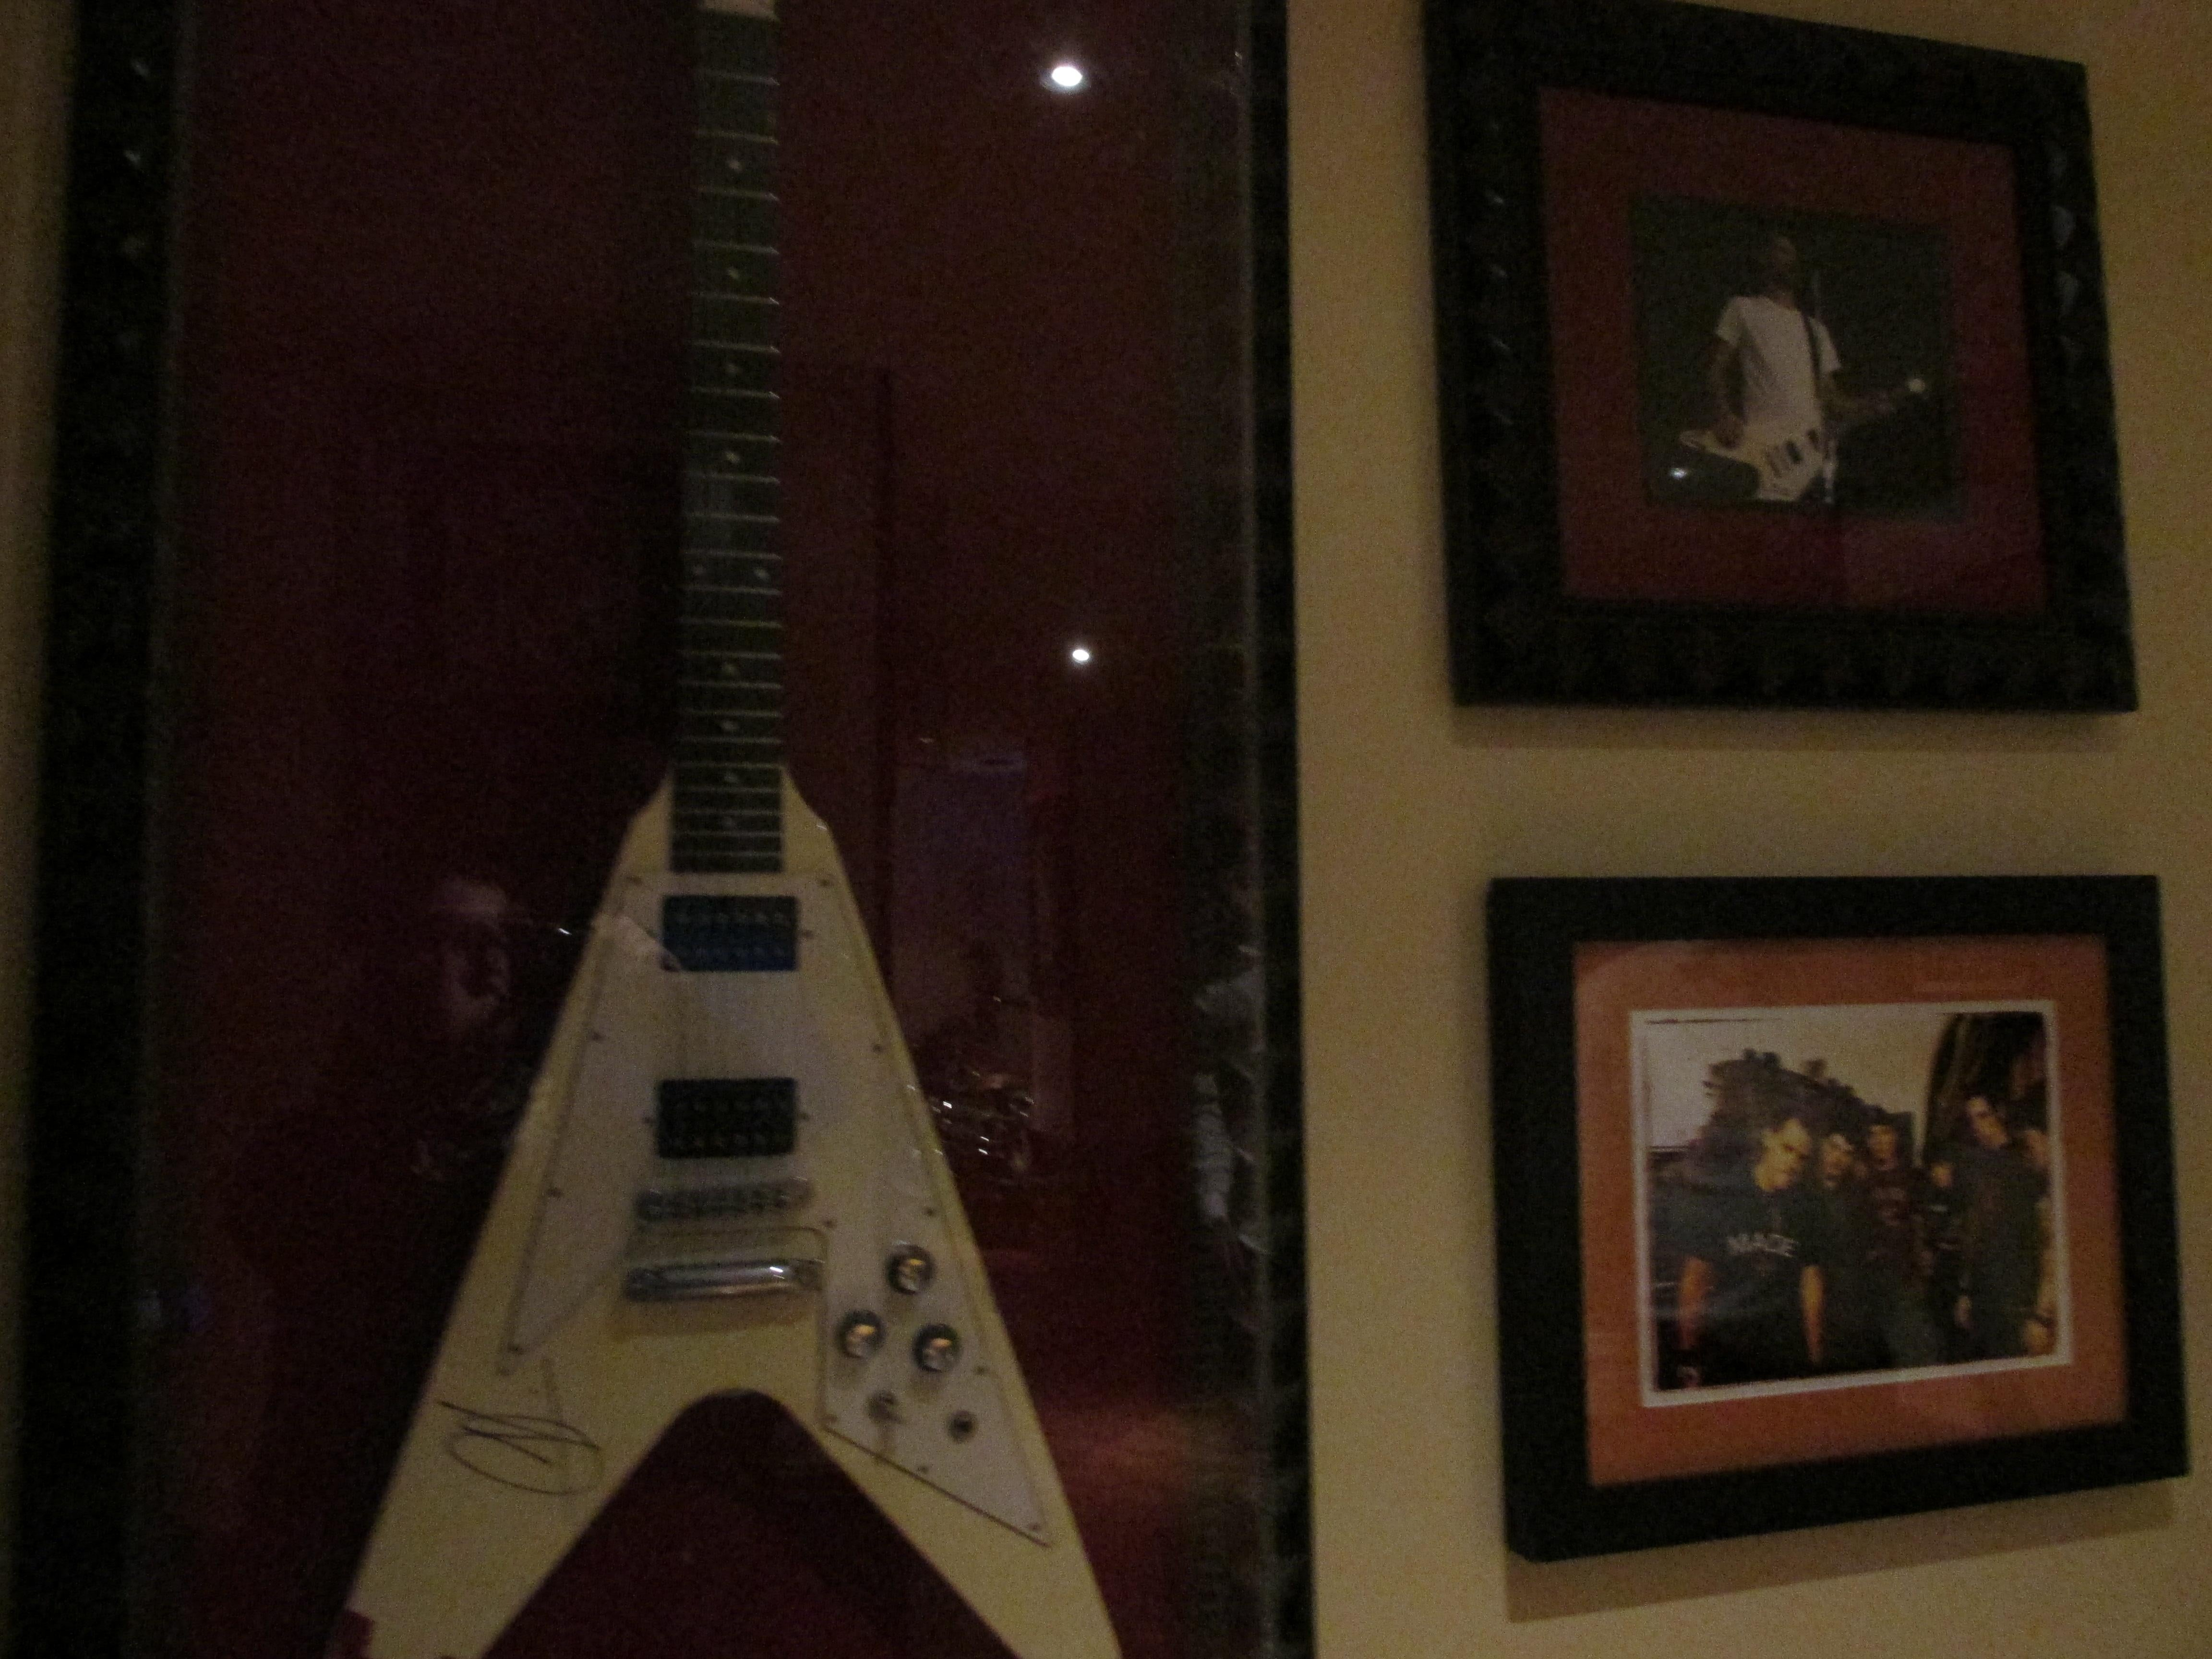 Casa en Hard Rock Café (Nueva York)